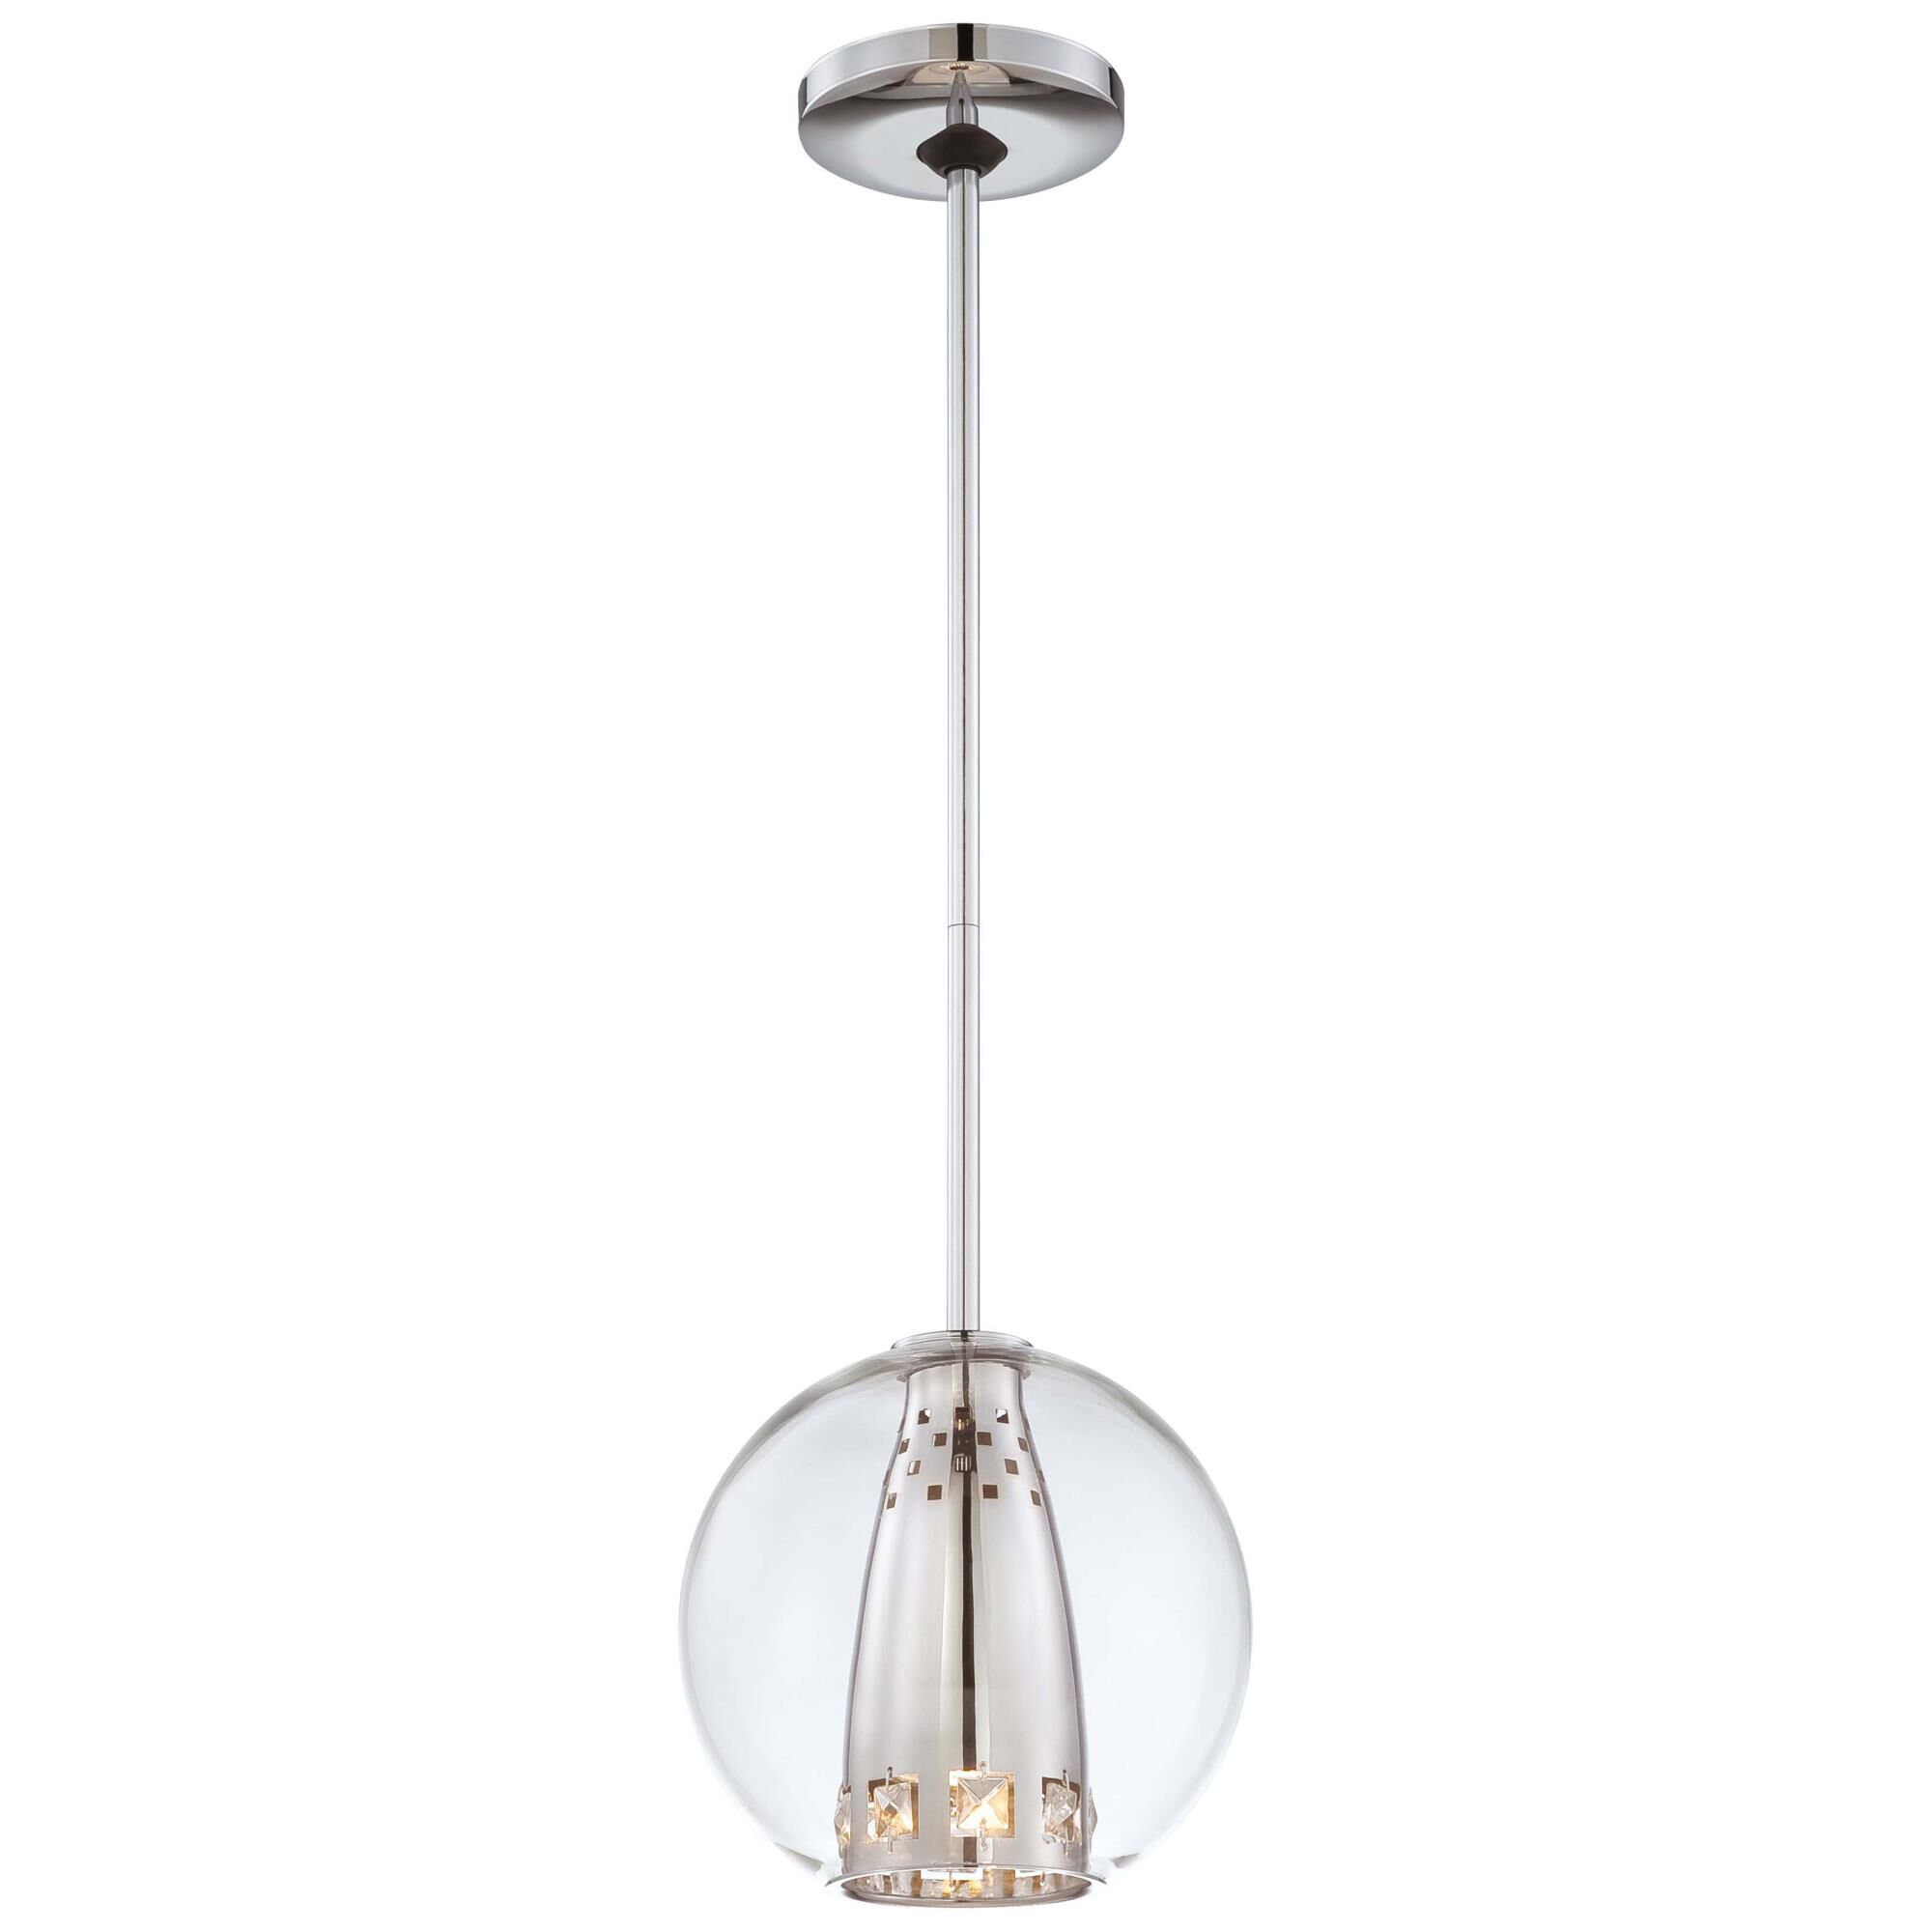 Kovacs Bling Bang 8 Inch Mini Pendant Bling Bang - P941-077 - Modern Contemporary